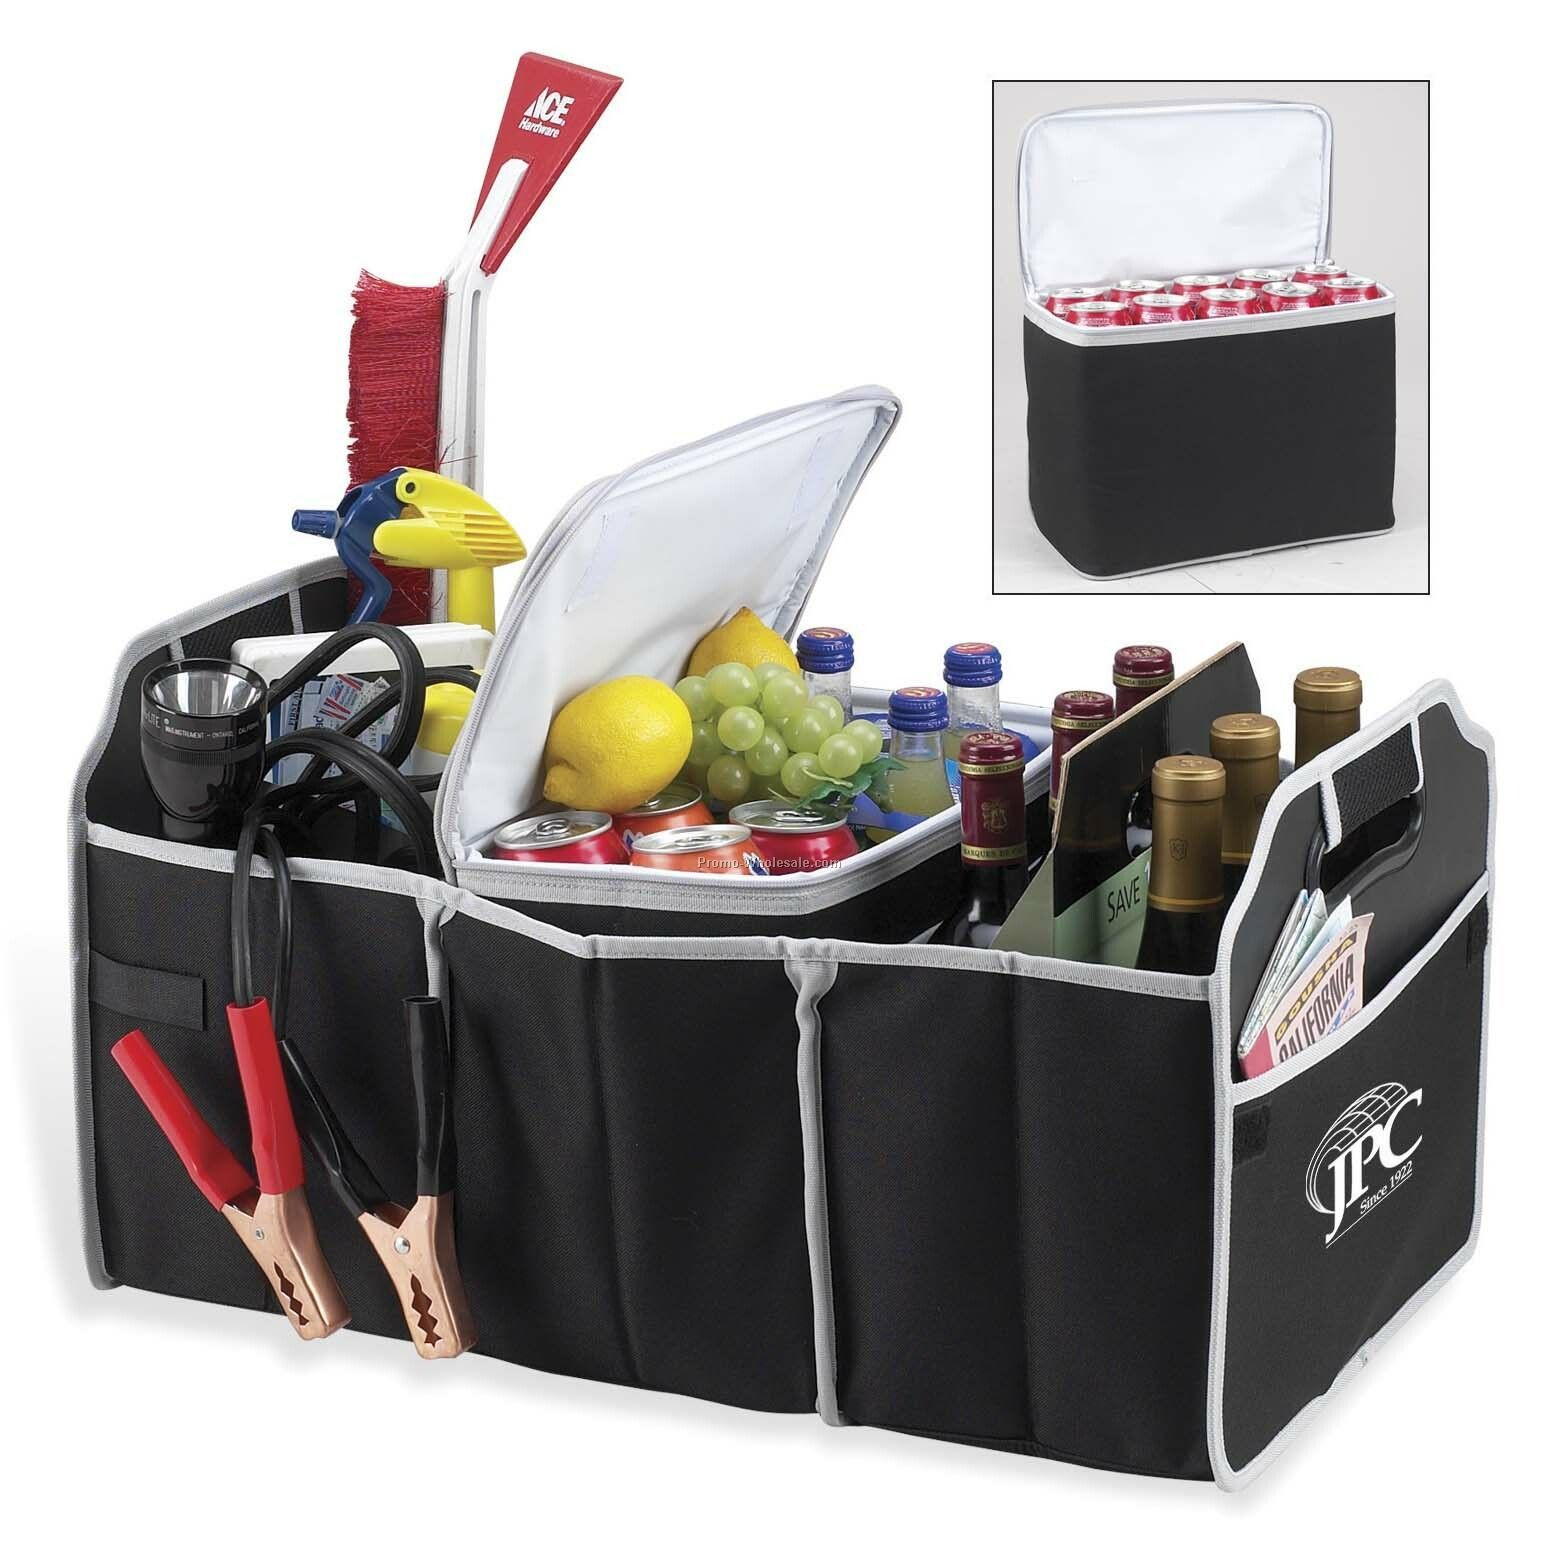 Combination Trunk Organizer And Cooler